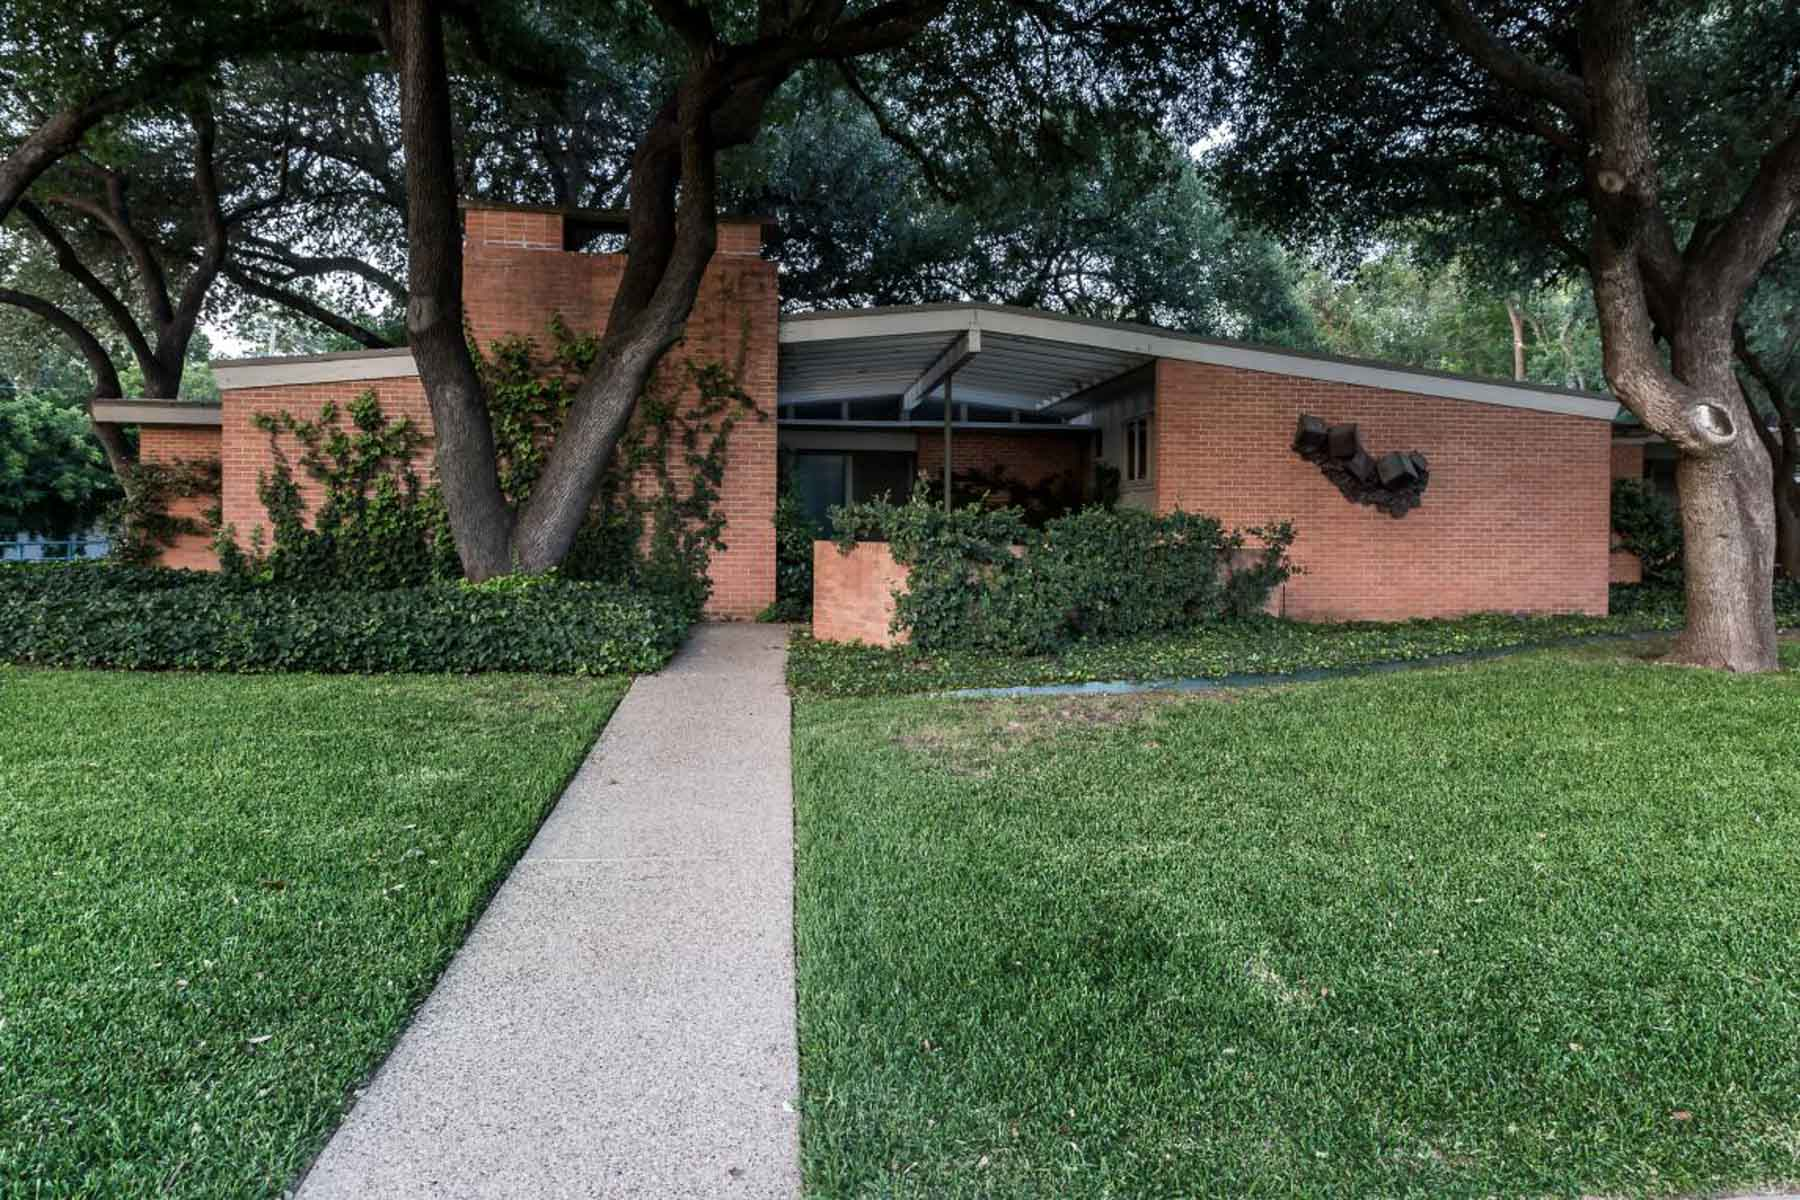 Single Family Home for Sale at Mid Century Modern Home 2601 Hartwood Drive Fort Worth, Texas, 76109 United States